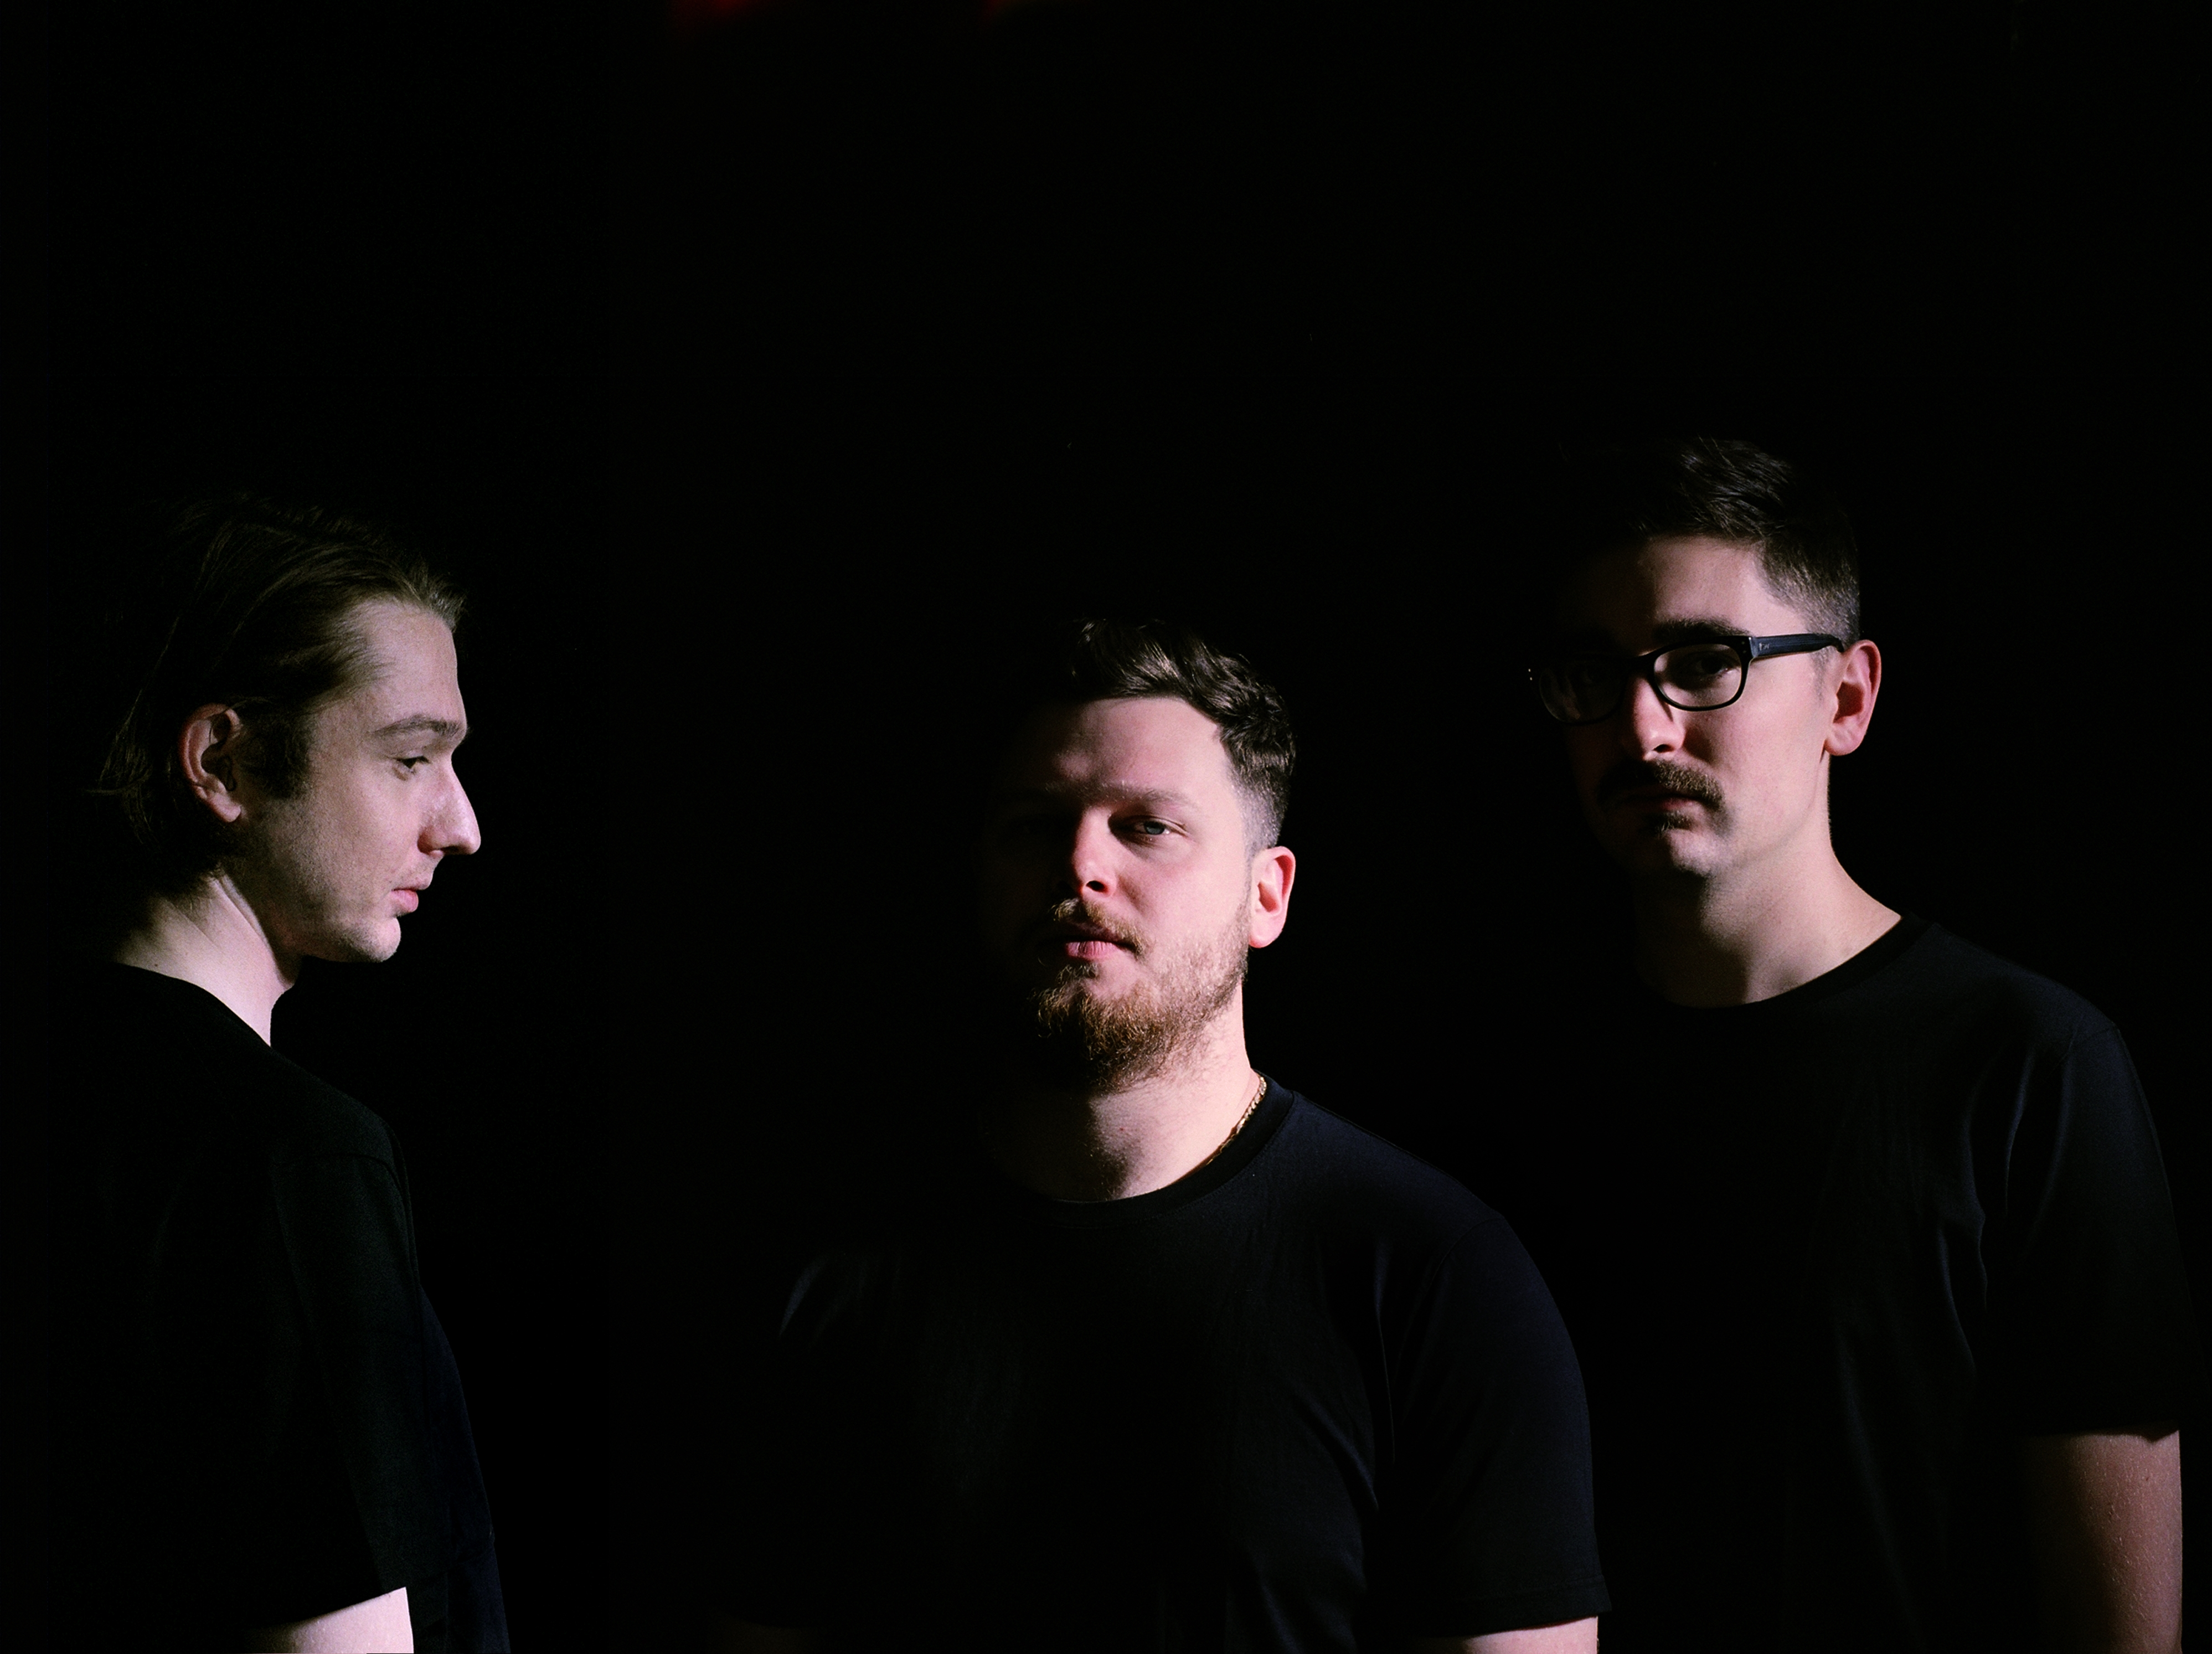 Live Review: alt-J // The SSE Hydro, Glasgow 07.12.15